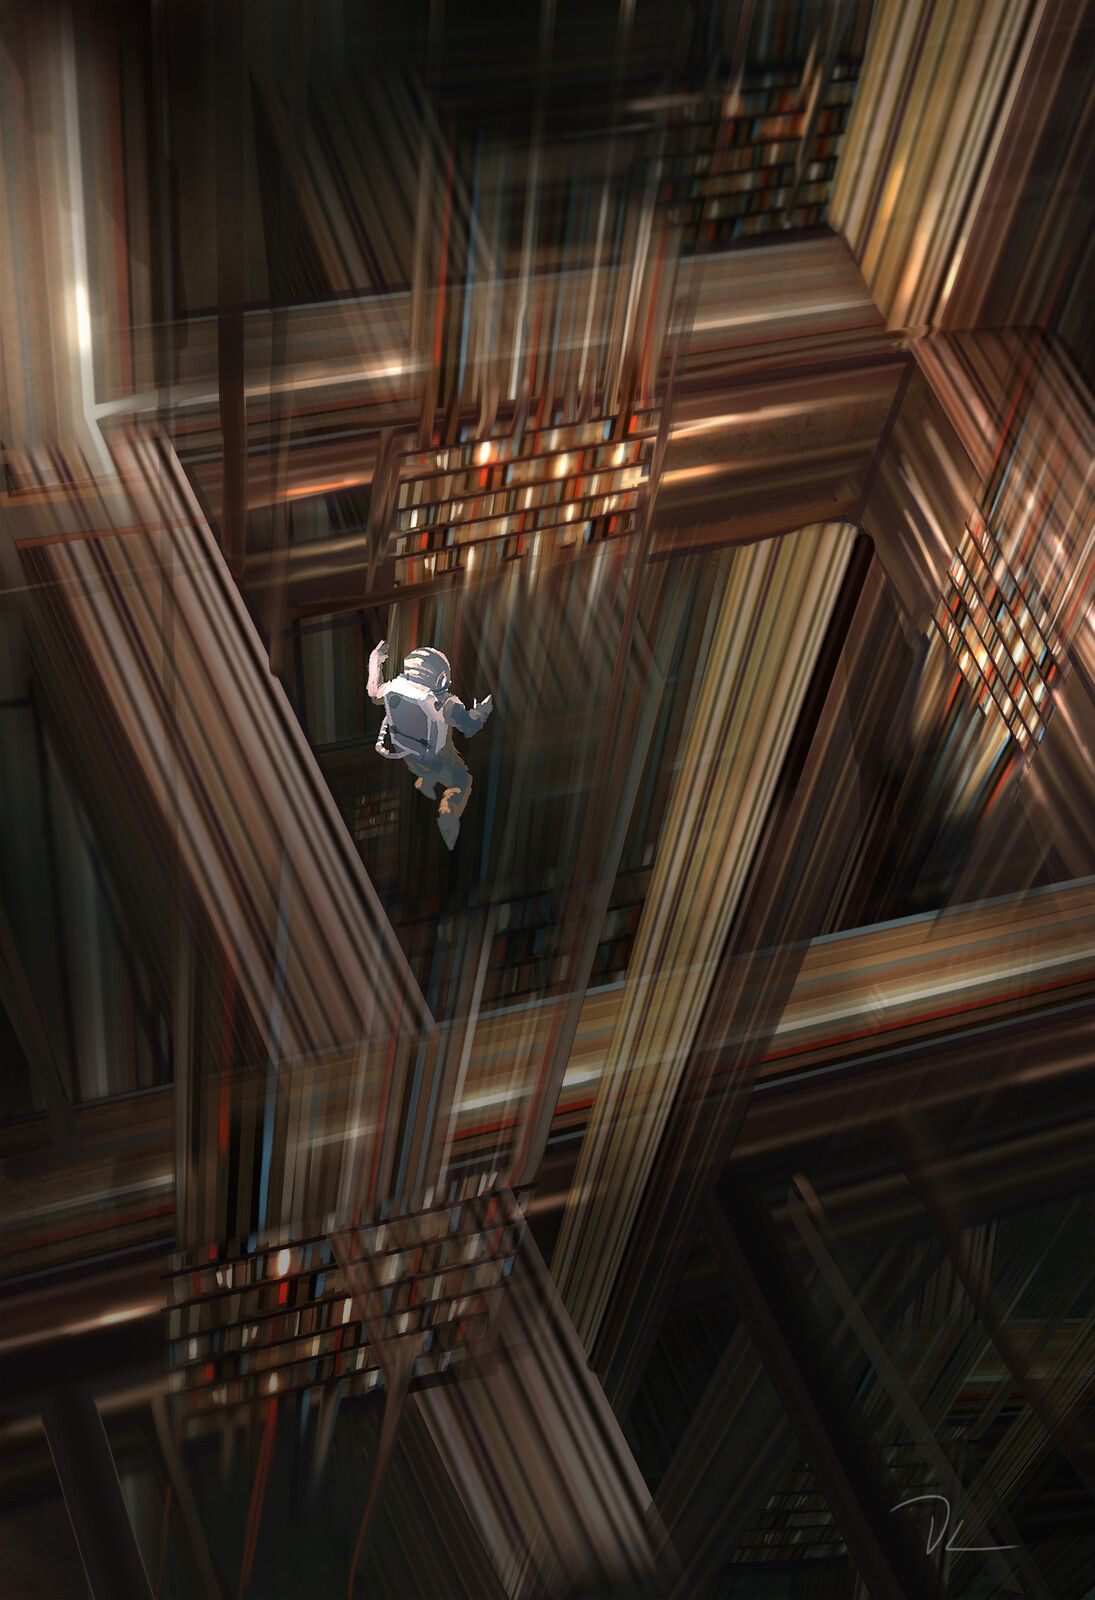 Spitpainting: endless library, Denis Loebner